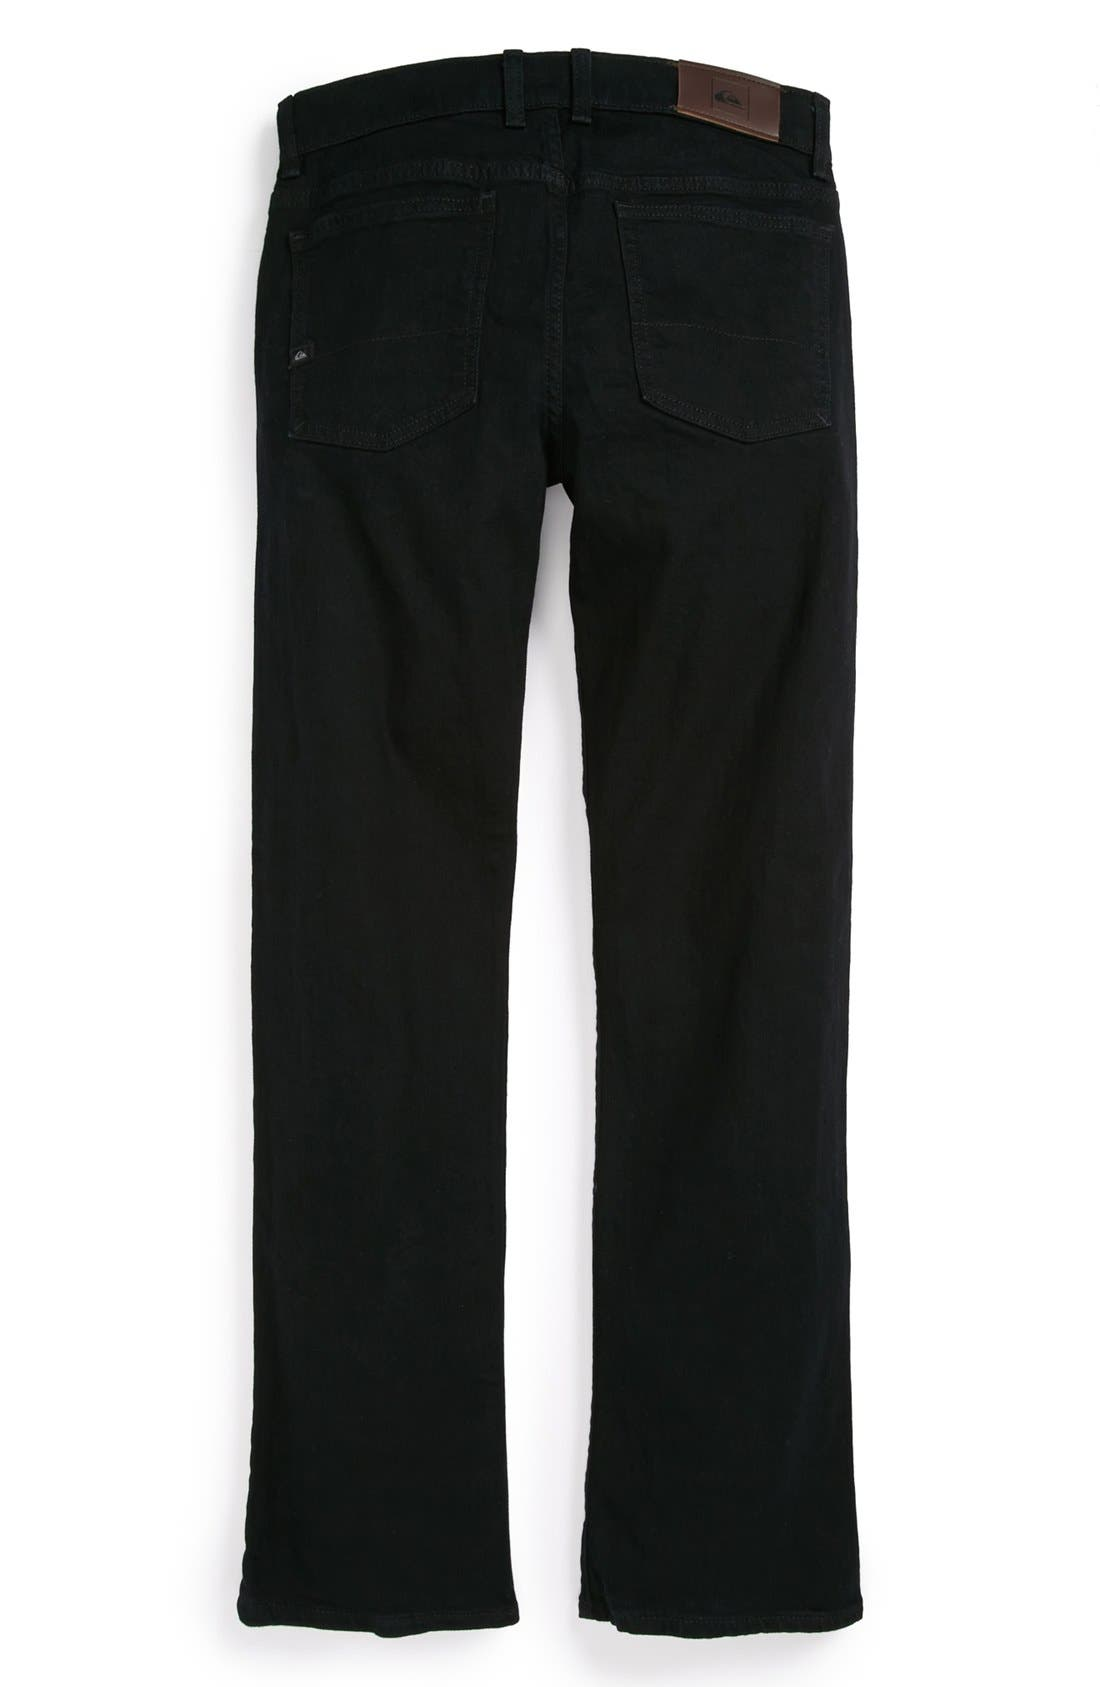 Alternate Image 1 Selected - Quiksilver 'Distortion' Slim Straight Leg Jeans (Big Boys)